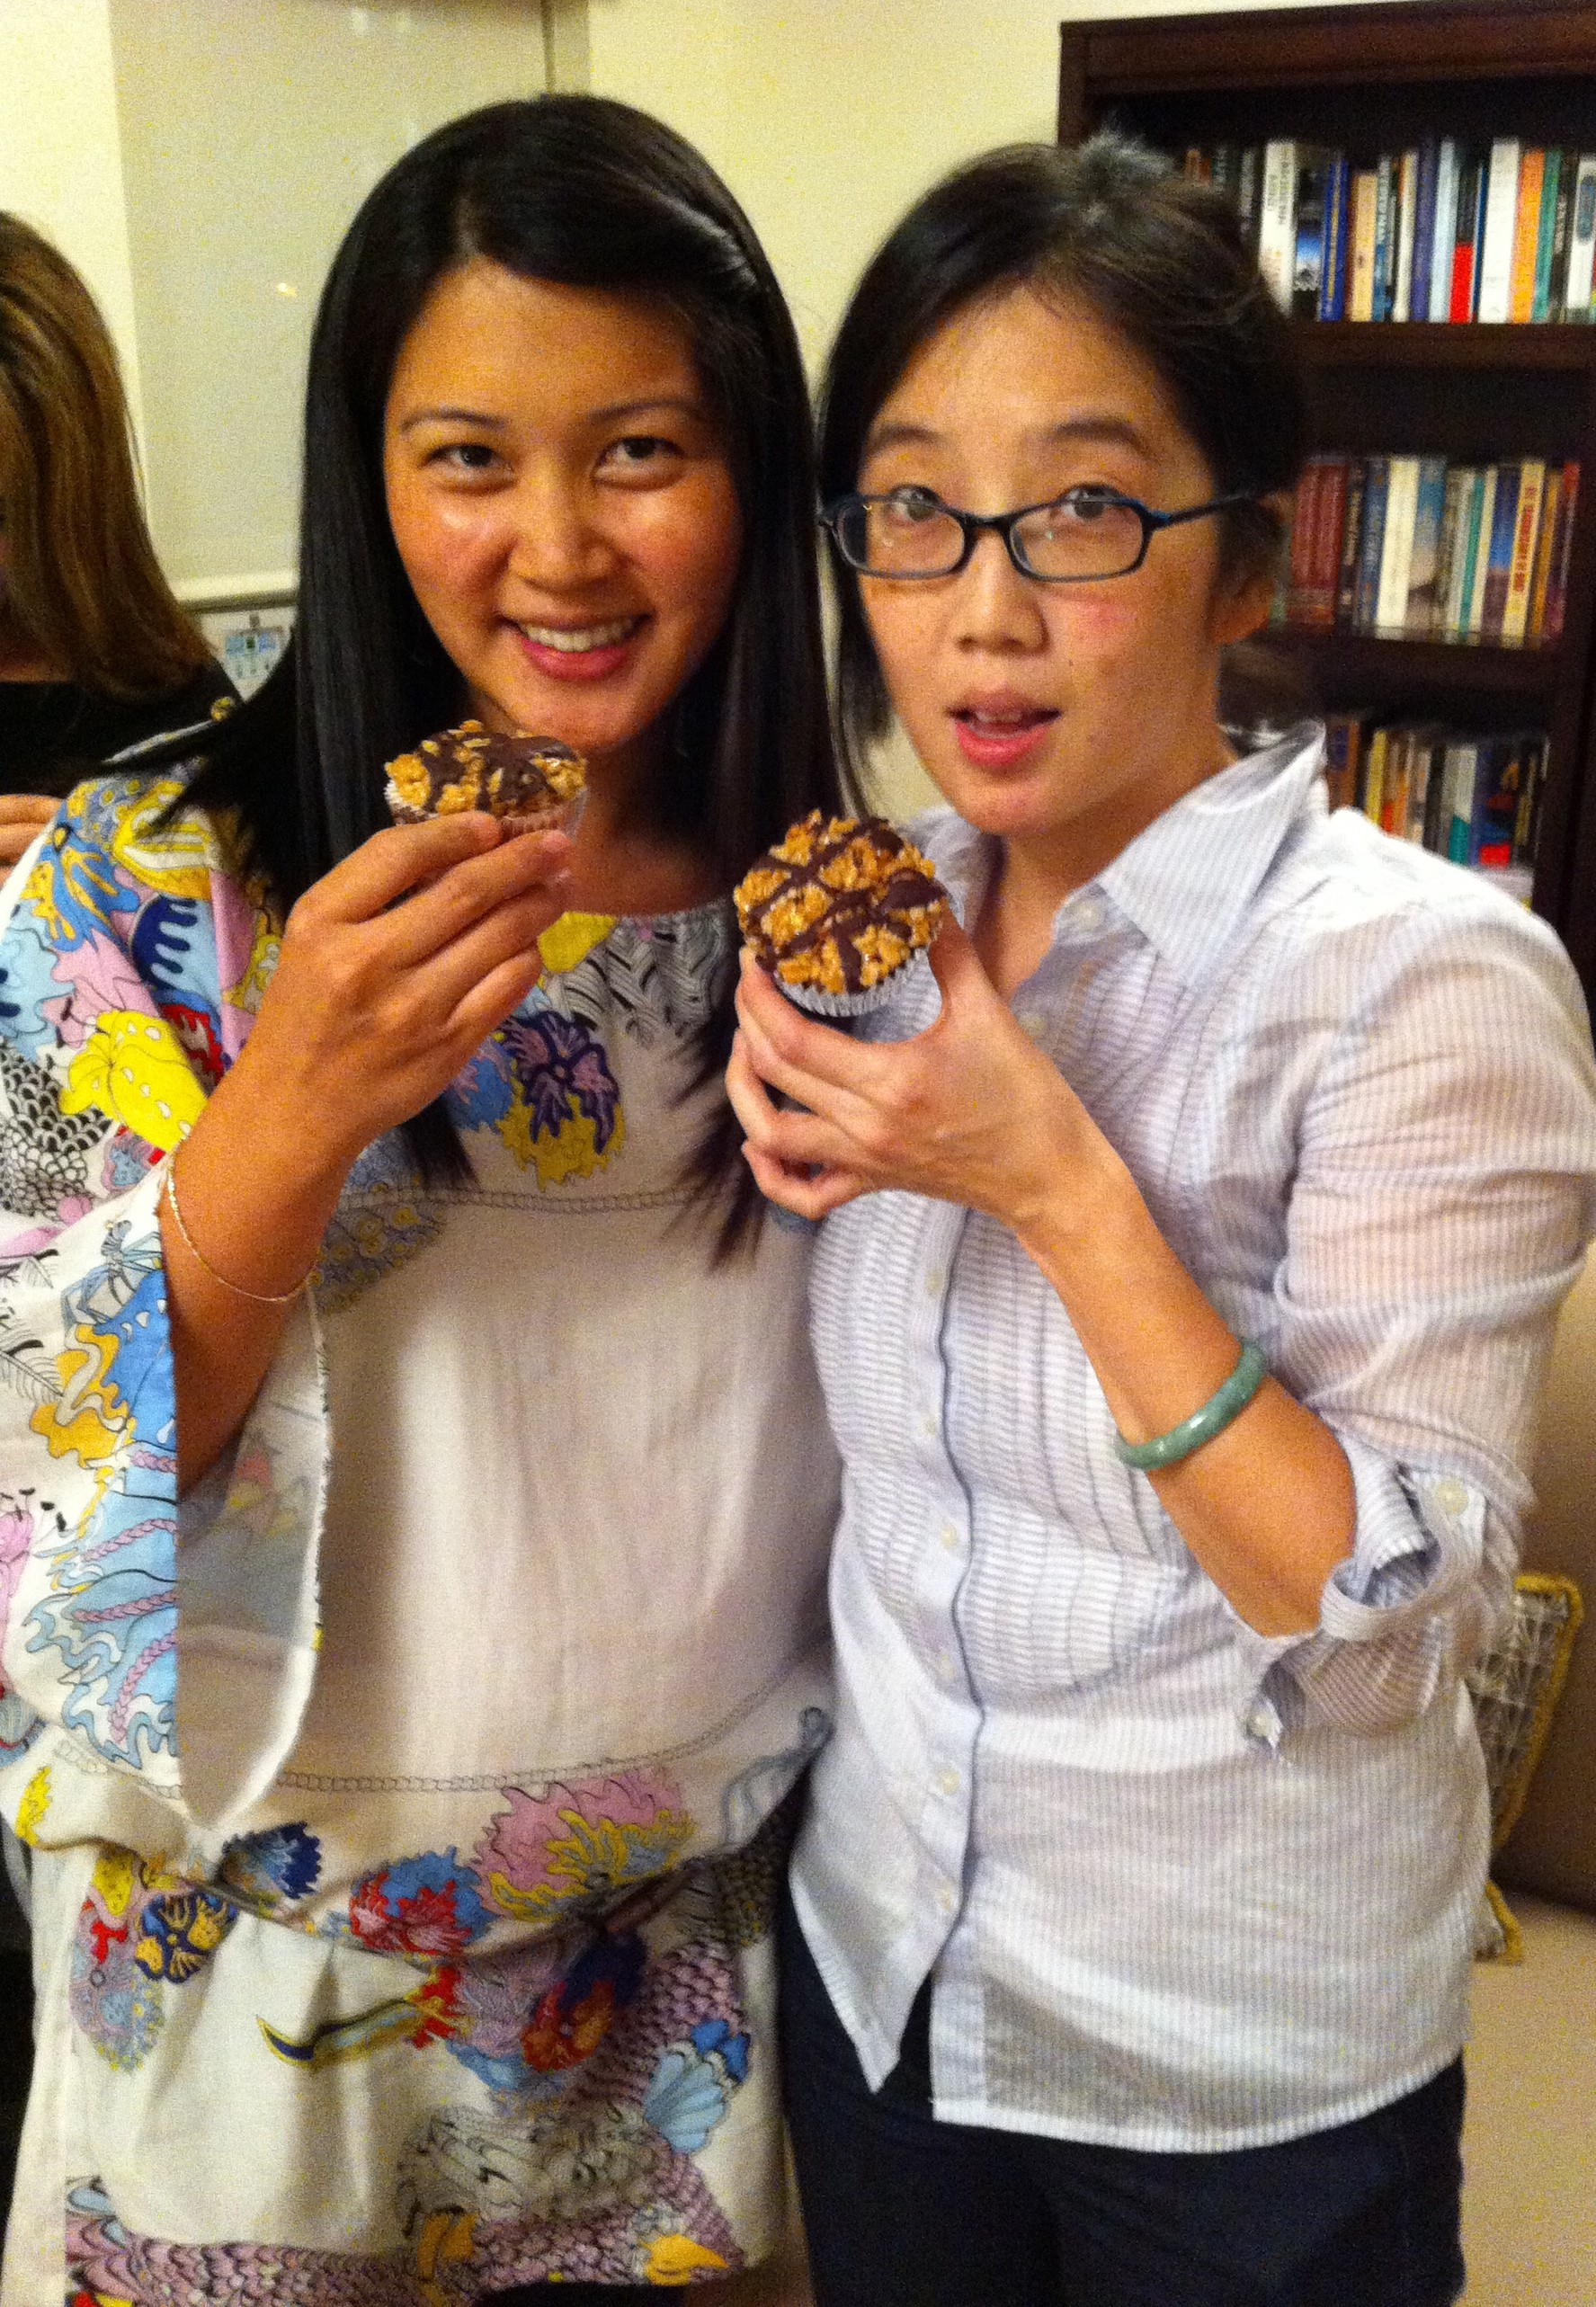 Denise and Karen took the first tastes of the vegan brown rice crispy treats.